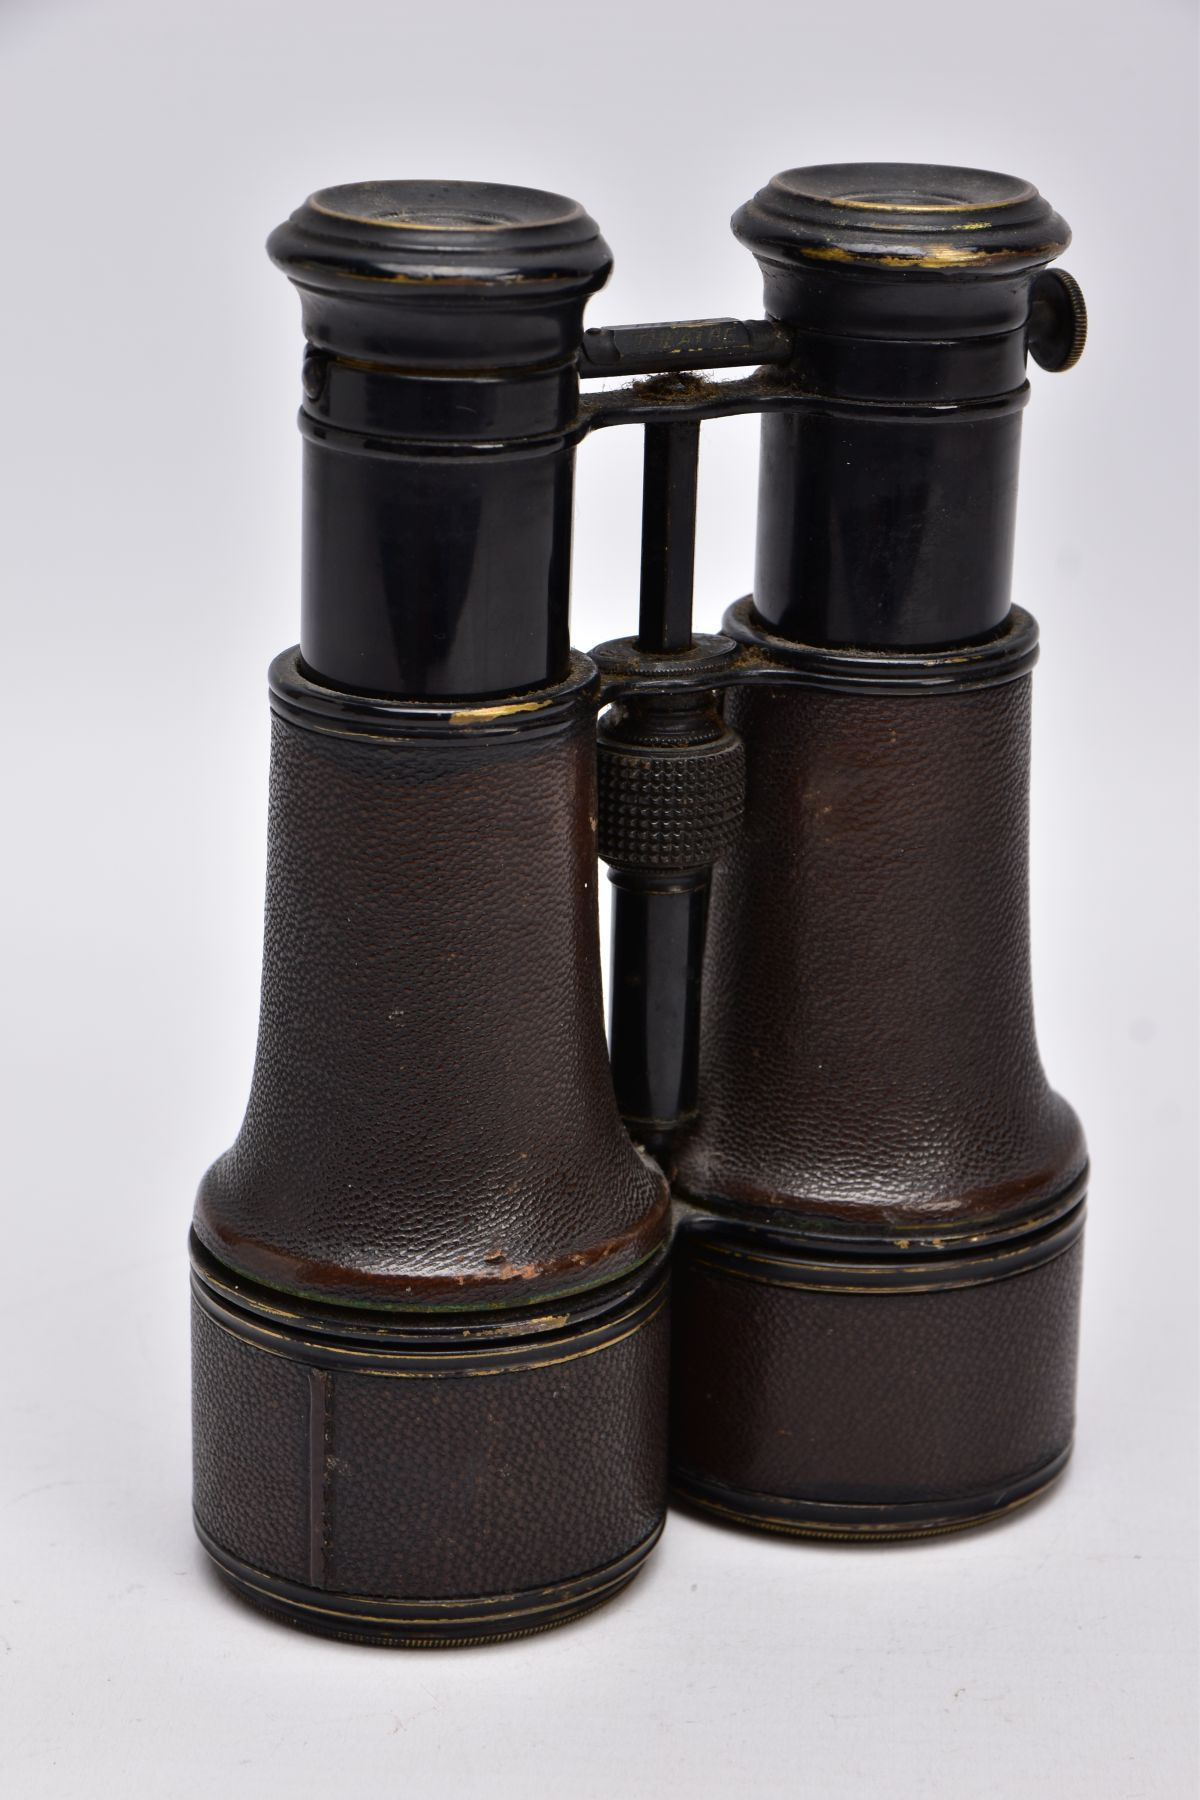 A PAIR OF WWI ERA BINOCULARS likely French manufacture, no makers marks, but they are marked '